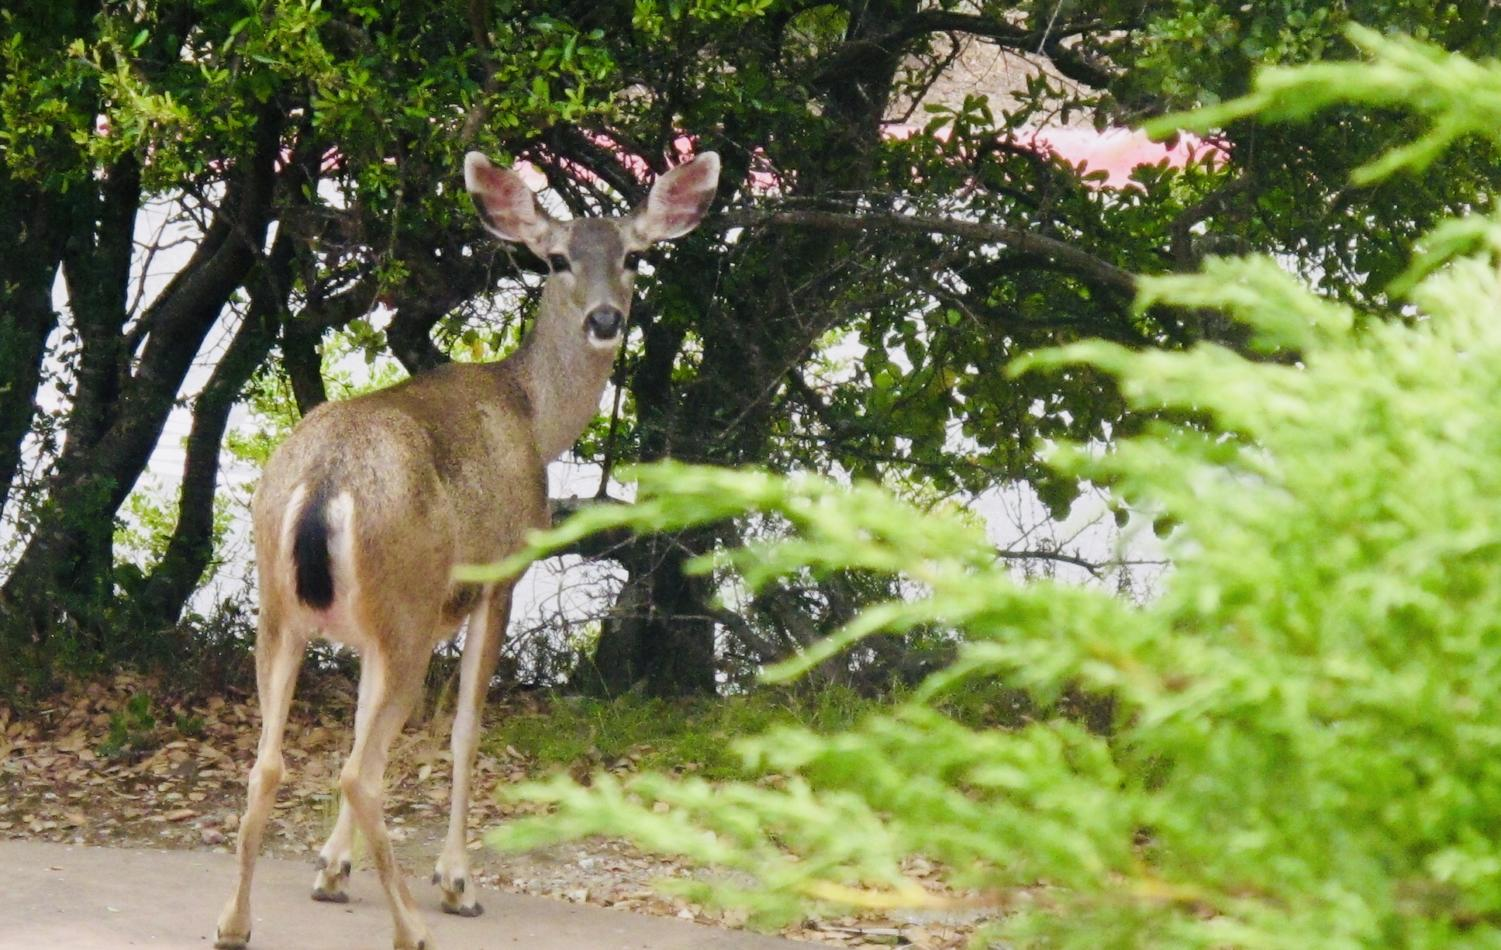 Deer in the Belmont and San Carlos area wander into peoples driveways and yards.